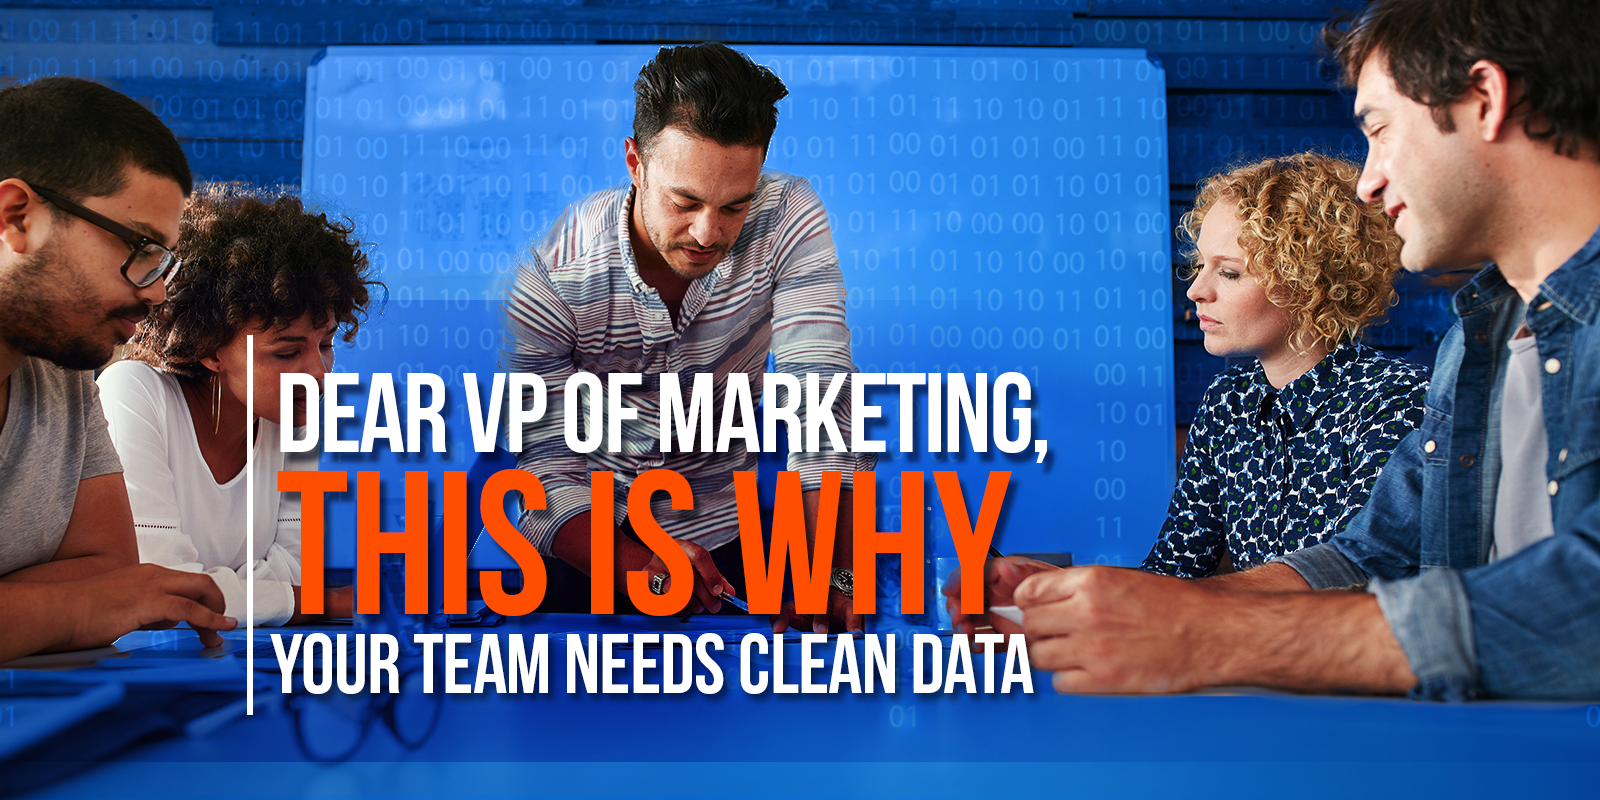 Dear VP Of Marketing, This Is Why Your Team Needs Clean Data